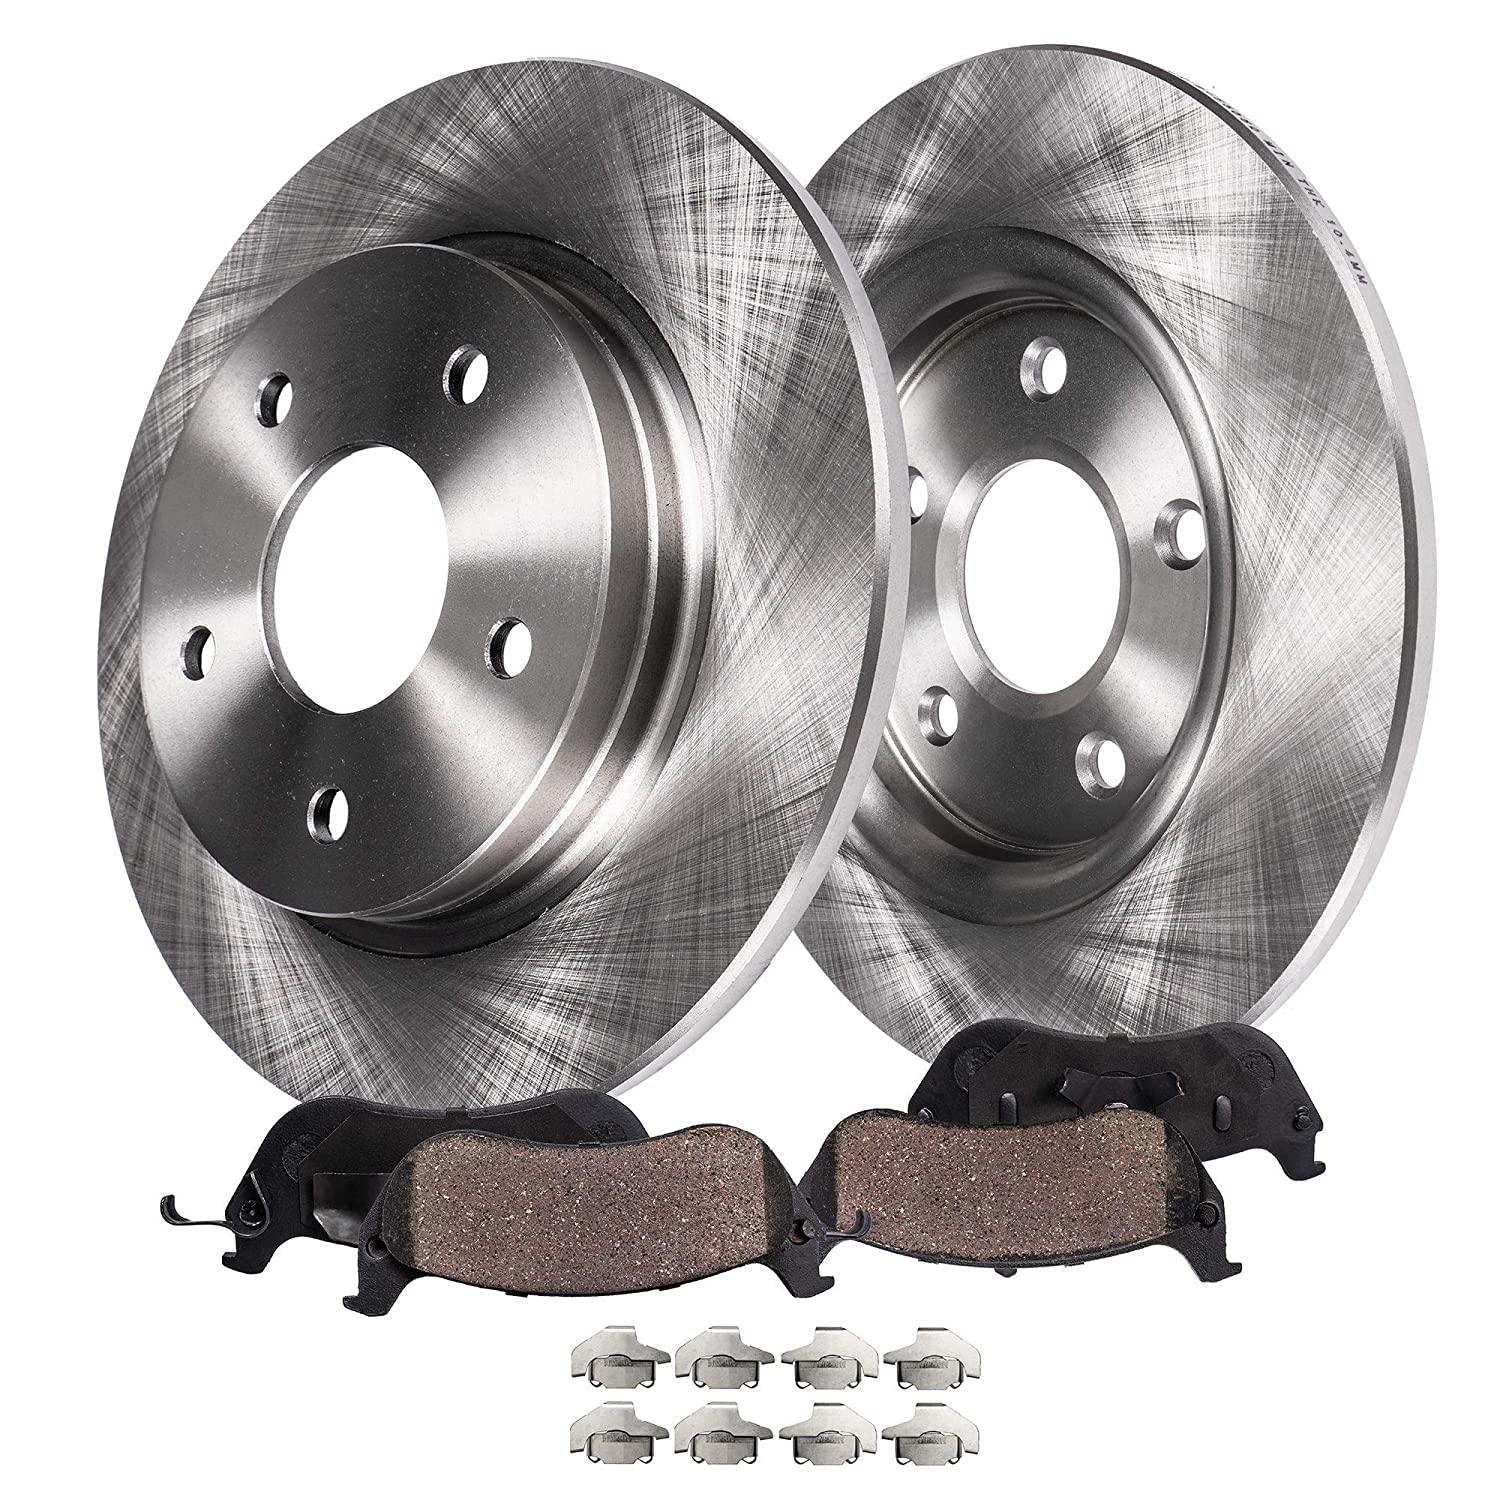 Detroit Axle - Rear Brake Rotors & Brake Pads w/Clips Hardware Kit for  2005-2008 Buick Allure- [2005-2009 Buick LaCrosse No Super] - 11-12 Chevy